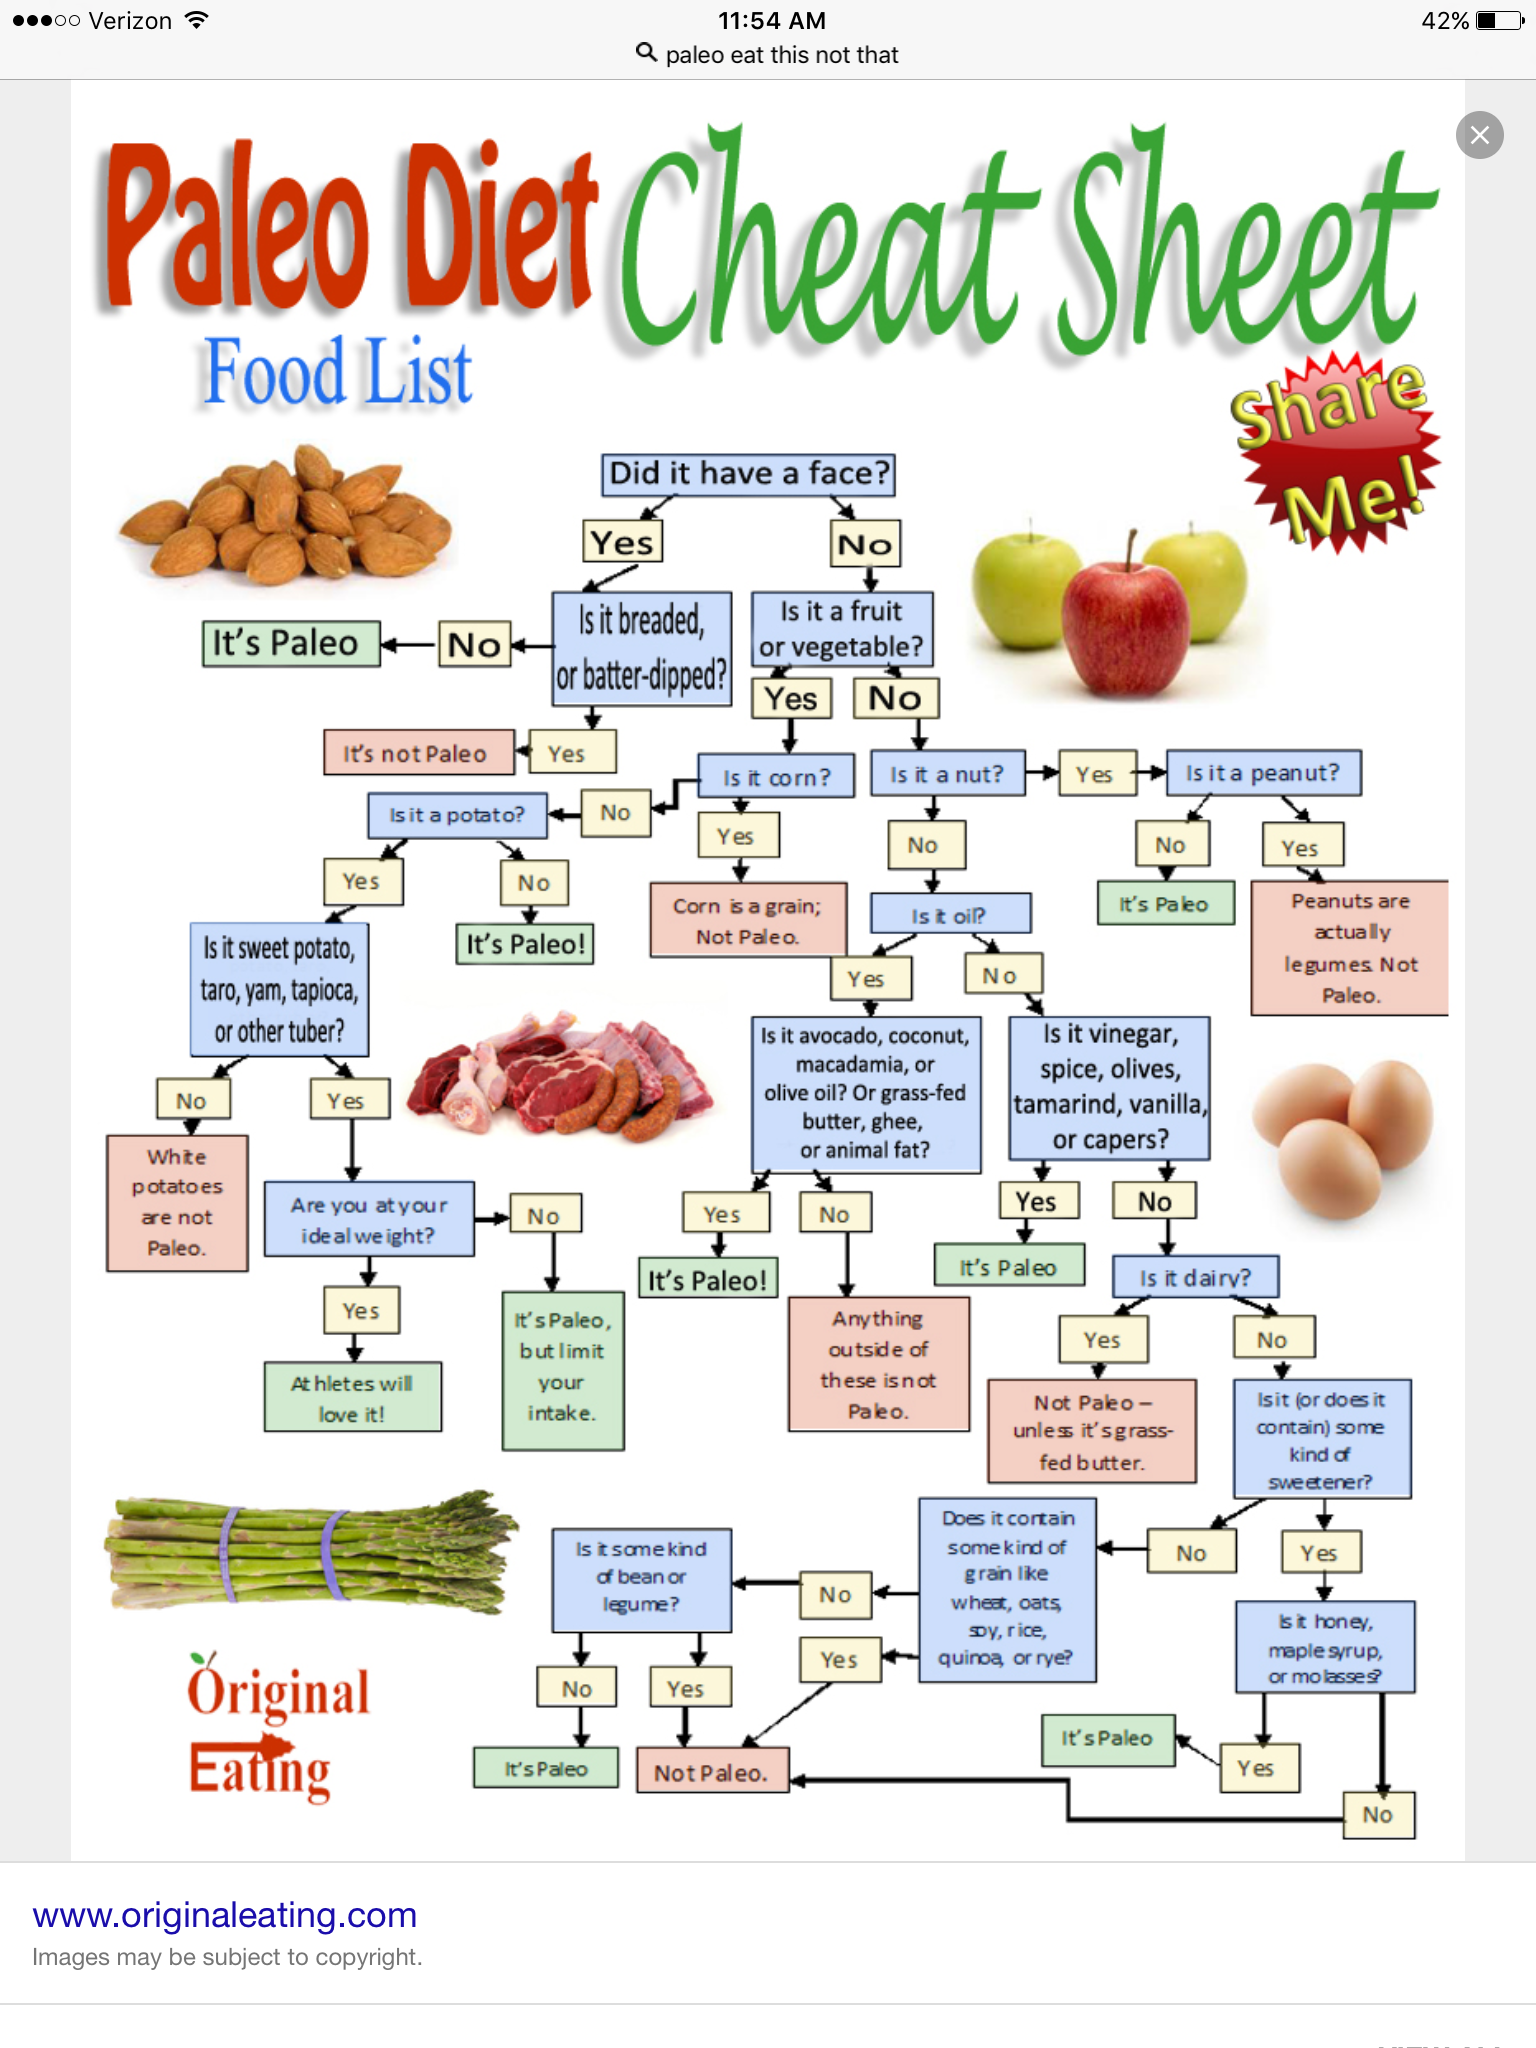 Pin By M Moseley On Healthy Eating How To Eat Paleo Paleo Diet Recipes Paleo Diet Food List